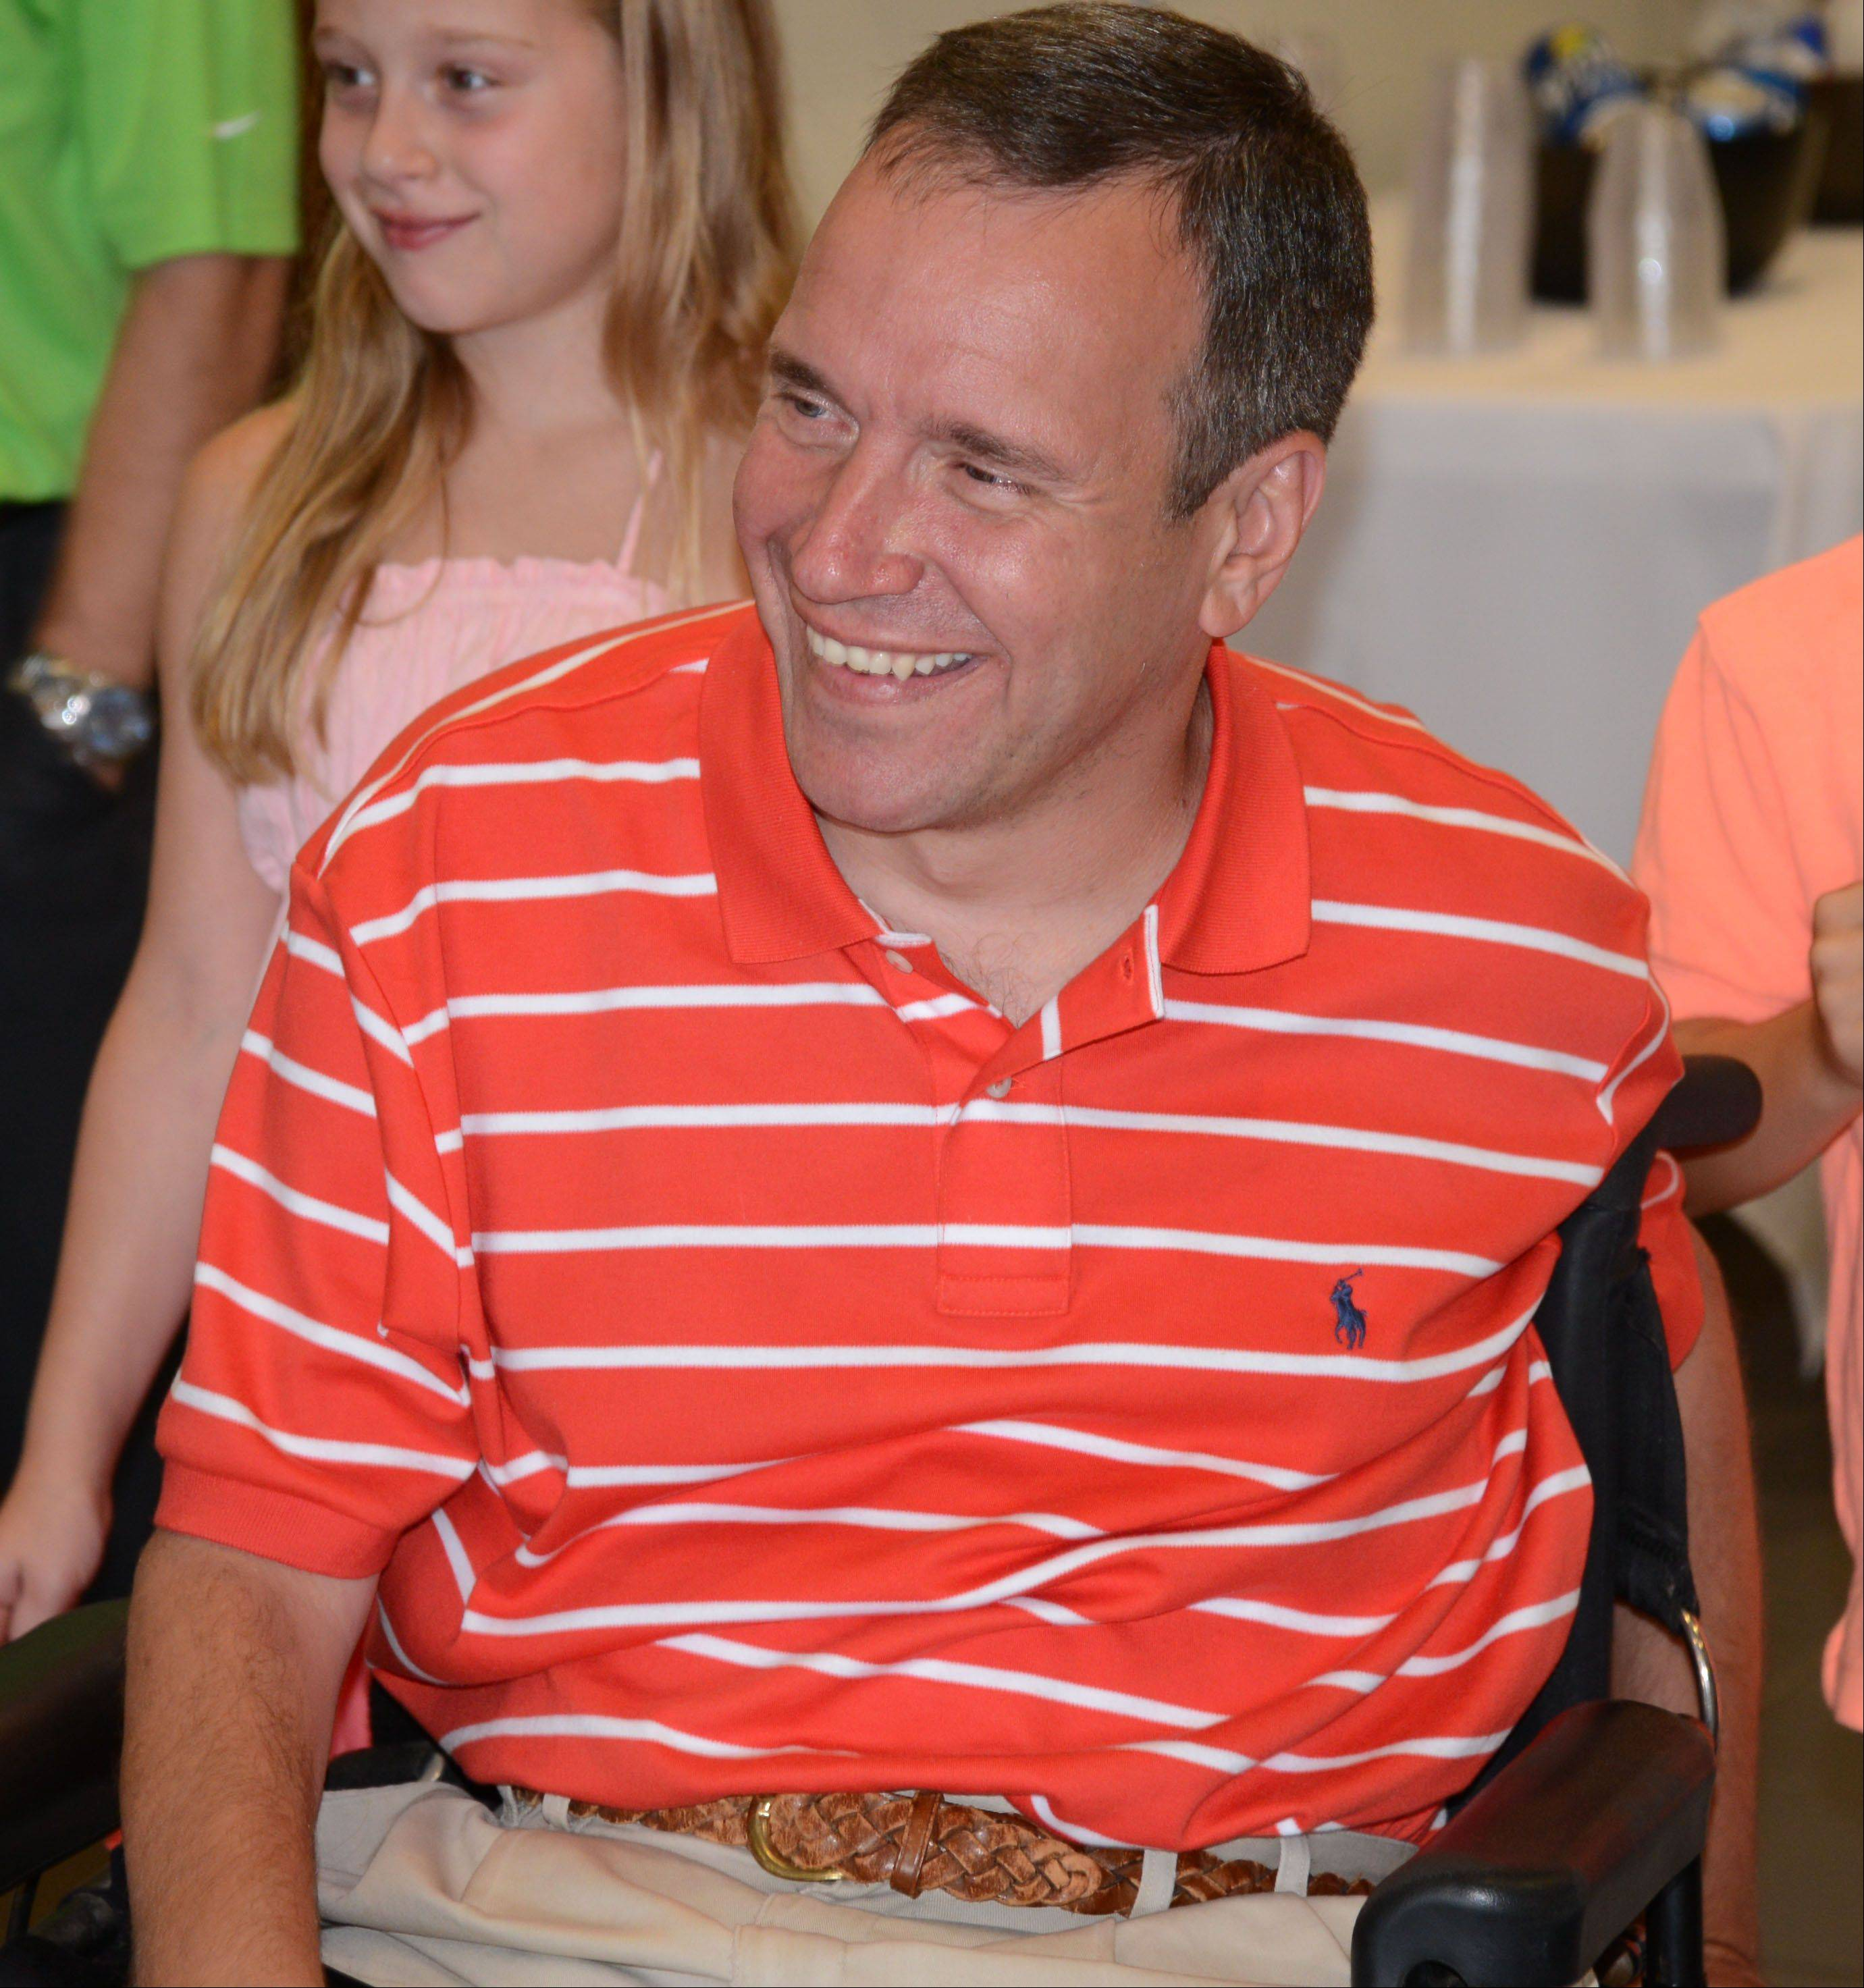 Steve Herbst of Palatine is all smiles Wednesday as he thanks the Local Heroes Contest for his new Honda Odyssey at Mobility Works in Villa Park. Herbst was paralyzed in 1980 while playing football at Palatine High School. He's one of the winners of the Local Heroes Contest sponsored by the National Mobility Equipment Dealers Association, VMI and San Tan Honda.